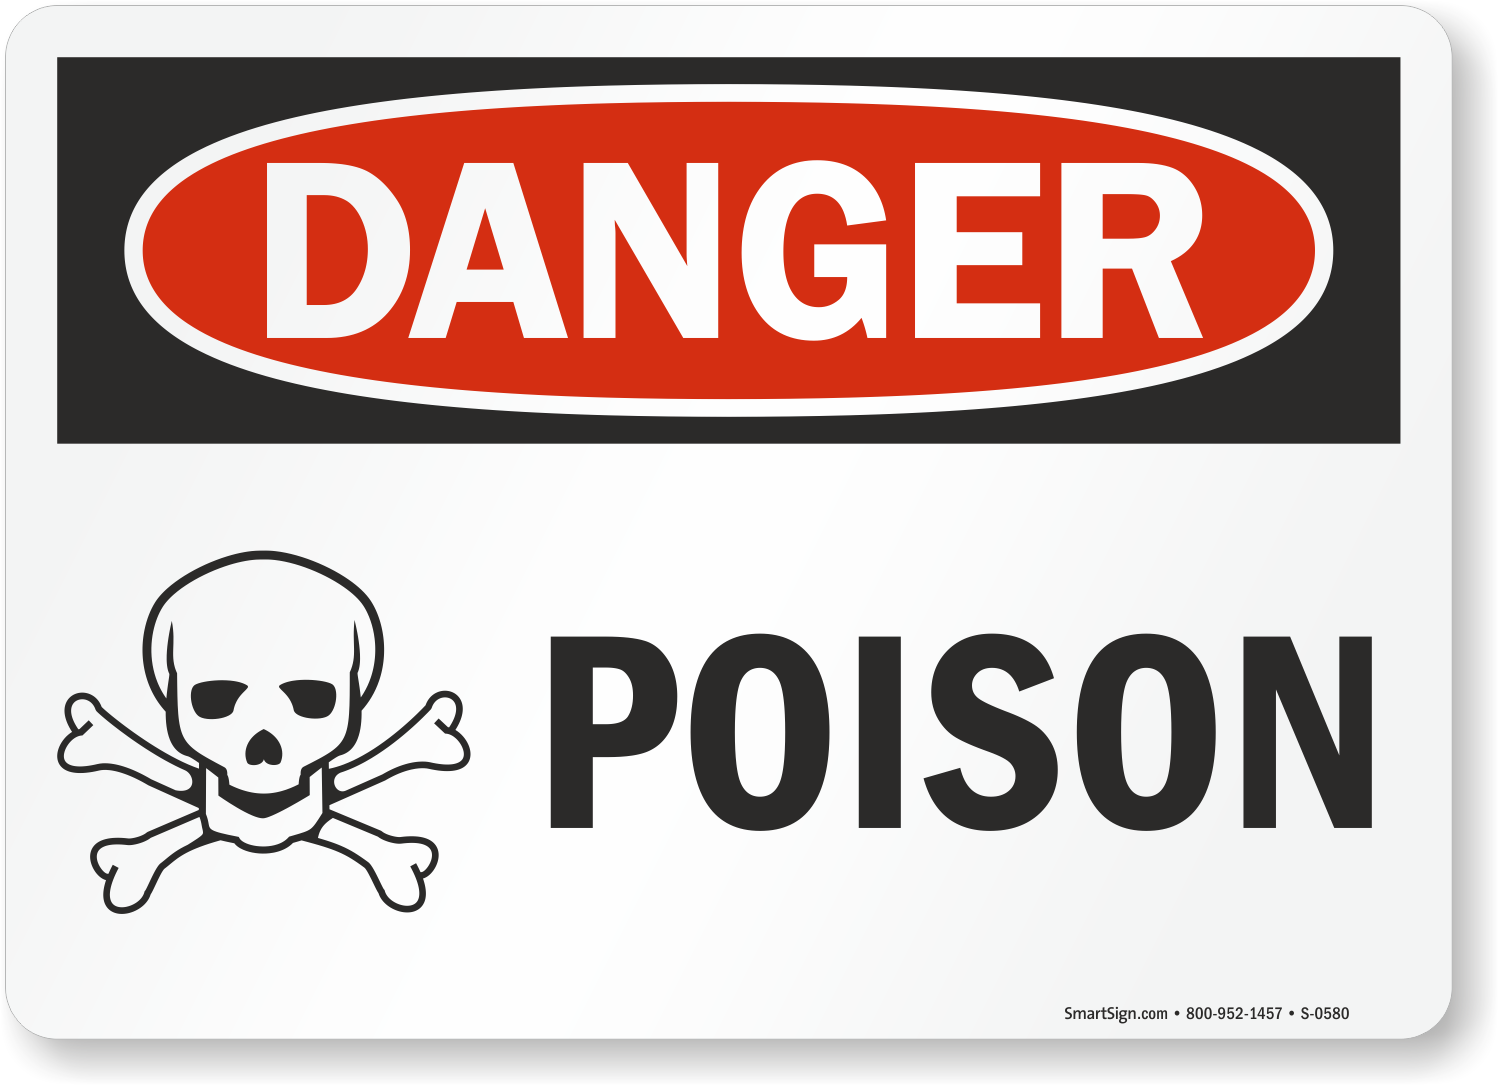 Poison Warning Signs Poisonous Chemicals Warning Signs